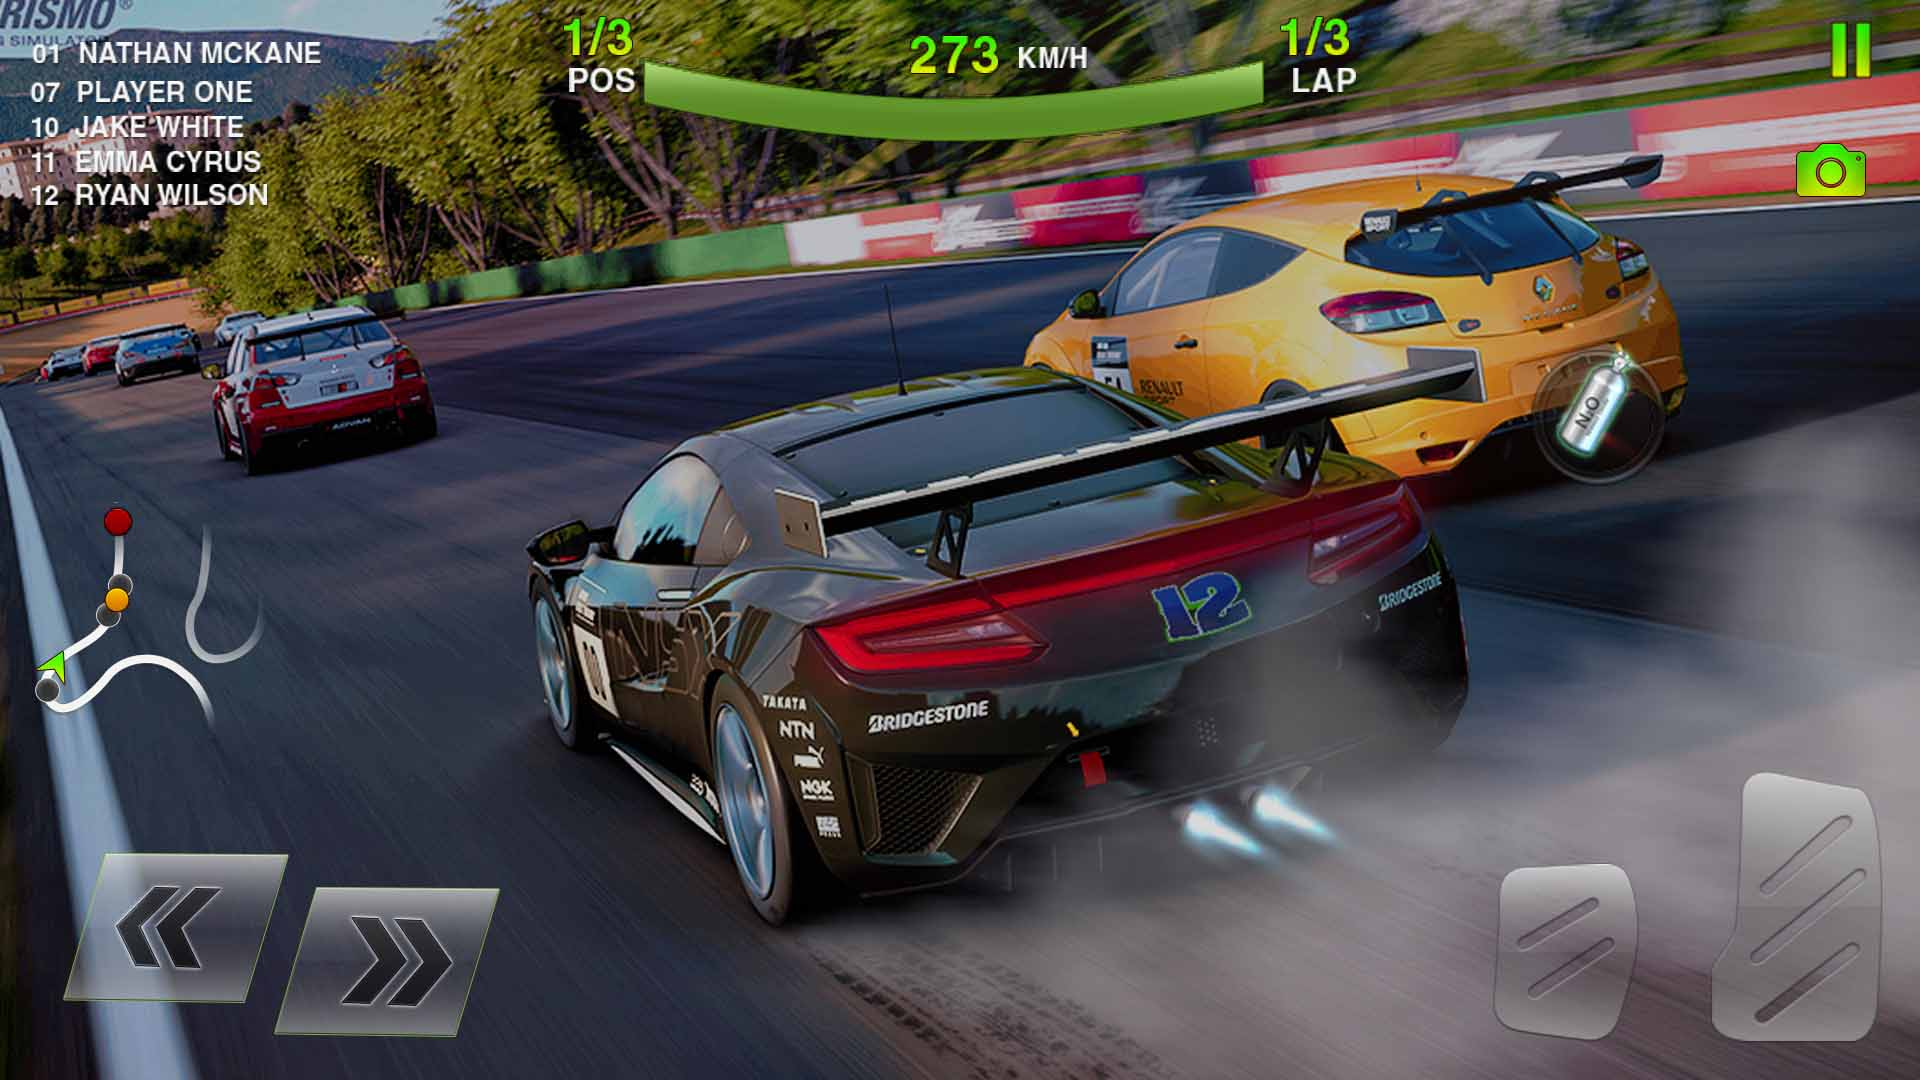 Amazon.com: Auto Racing Tracks Drift Car Driving Games: Appstore for Android